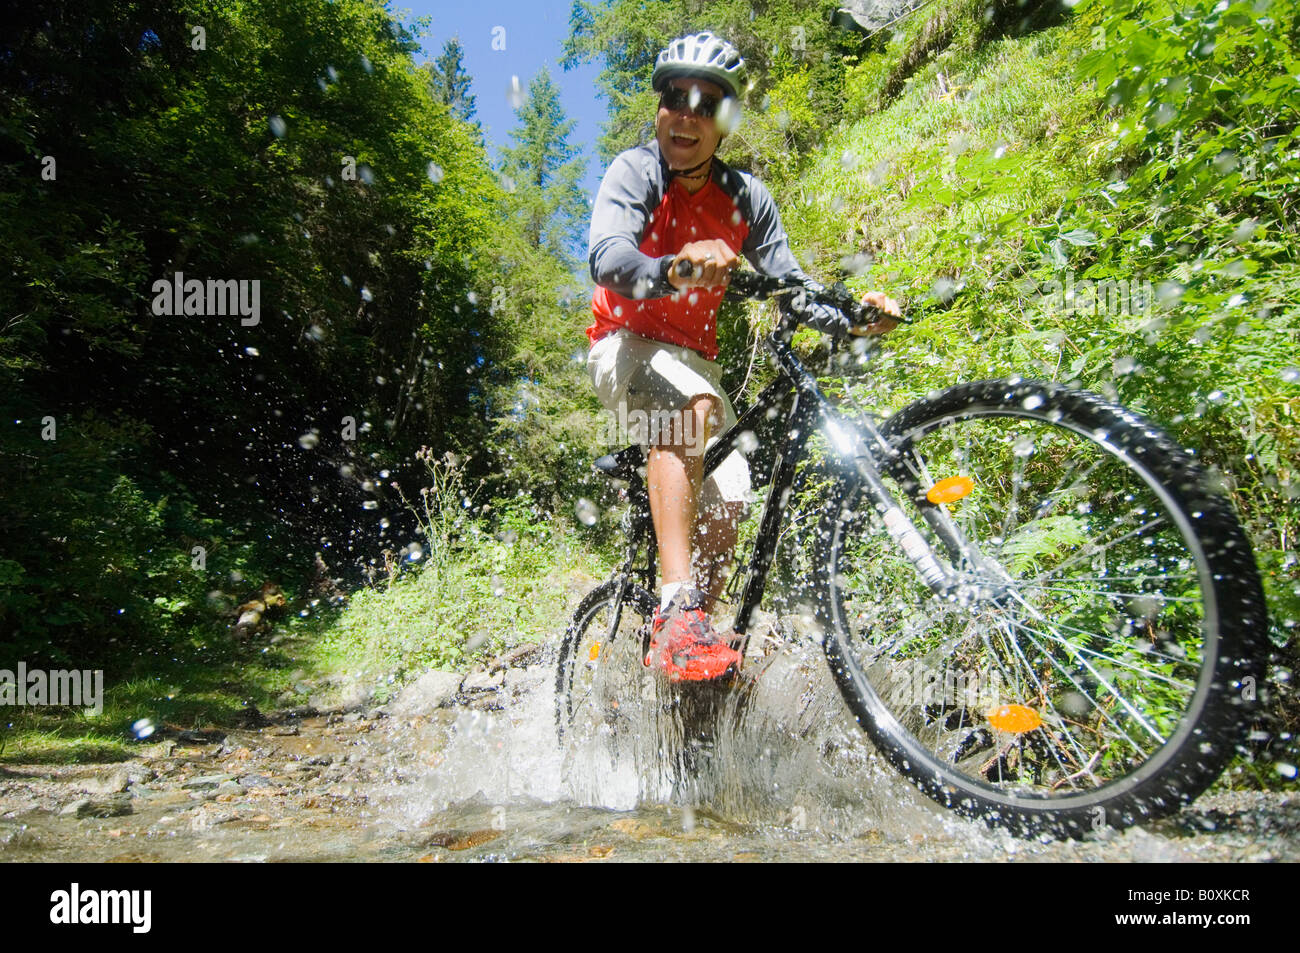 Mountainbiker crossing water - Stock Image